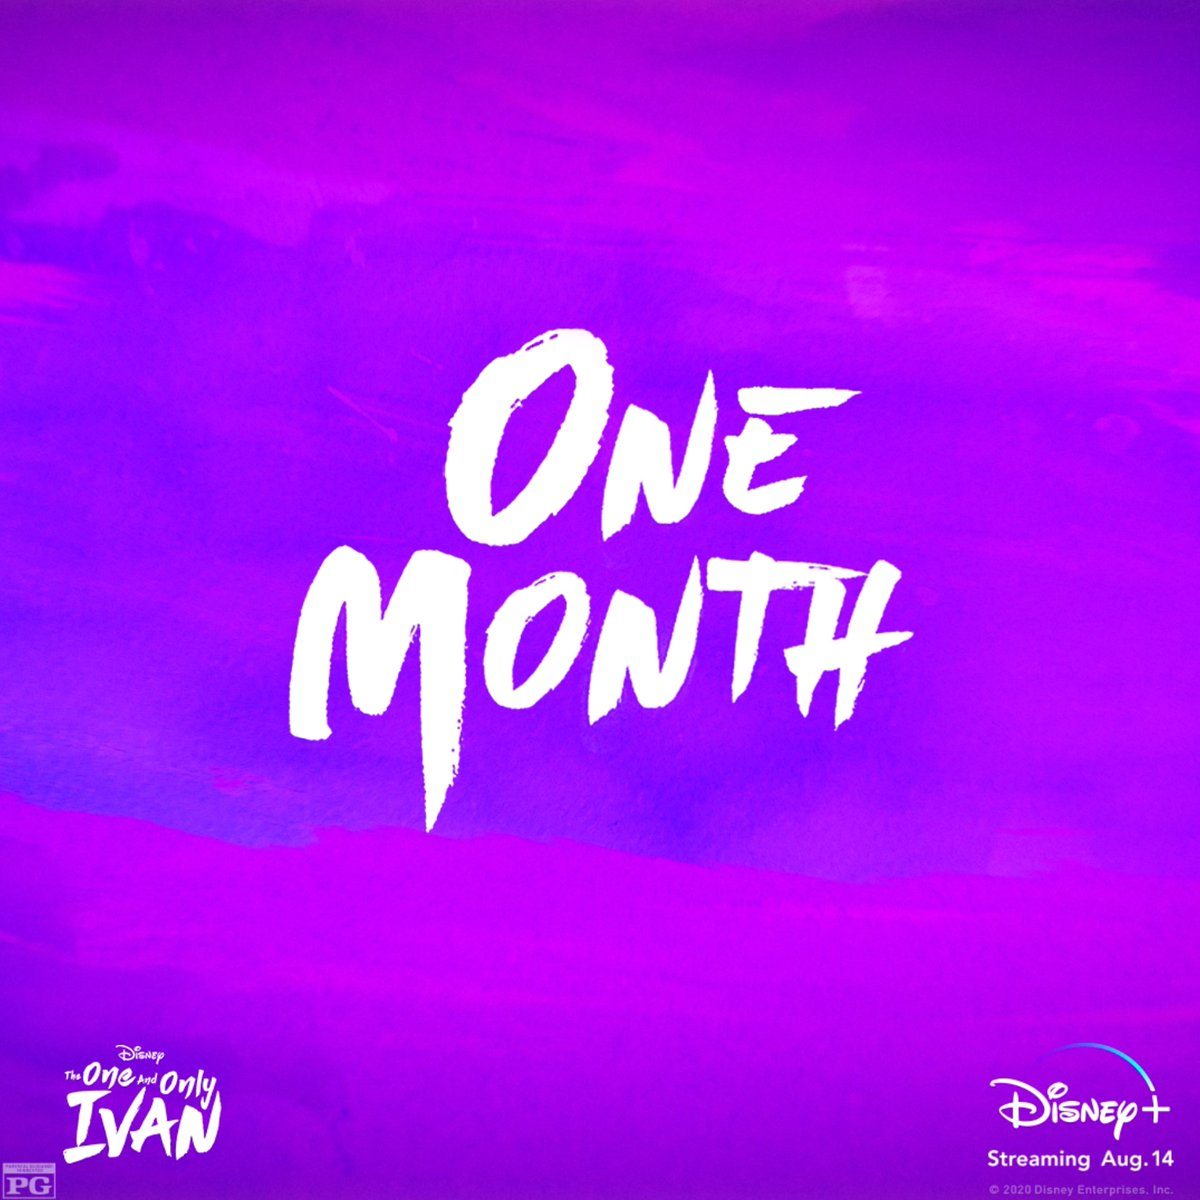 In only one month... meet The One and Only Ivan. 🦍🎪 Streaming exclusively on #DisneyPlus starting August 14. @IvanMovie